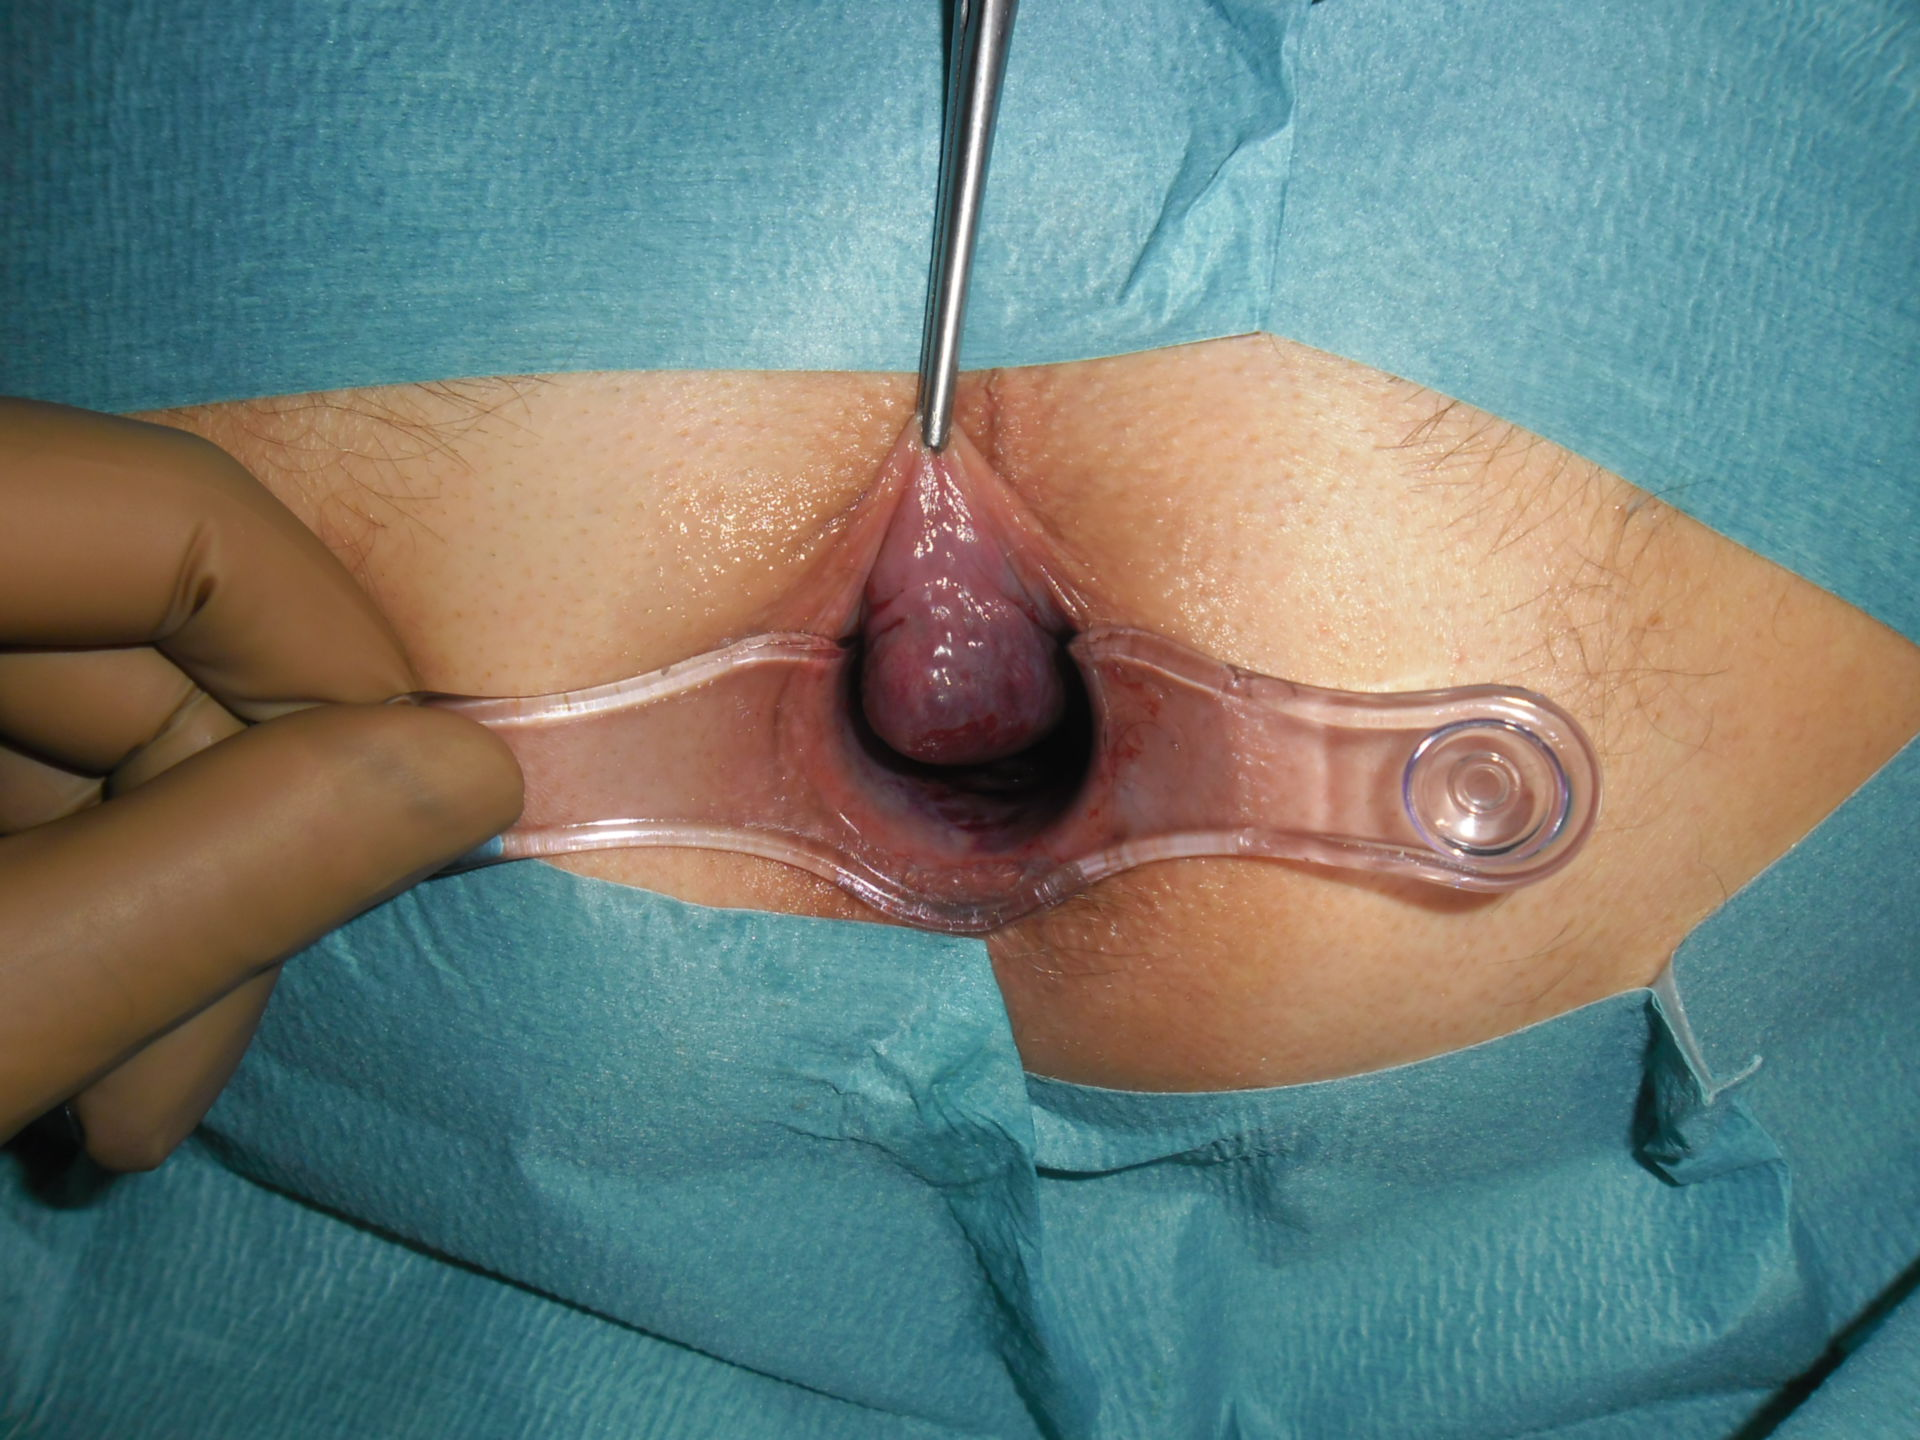 Large hemorrhoid